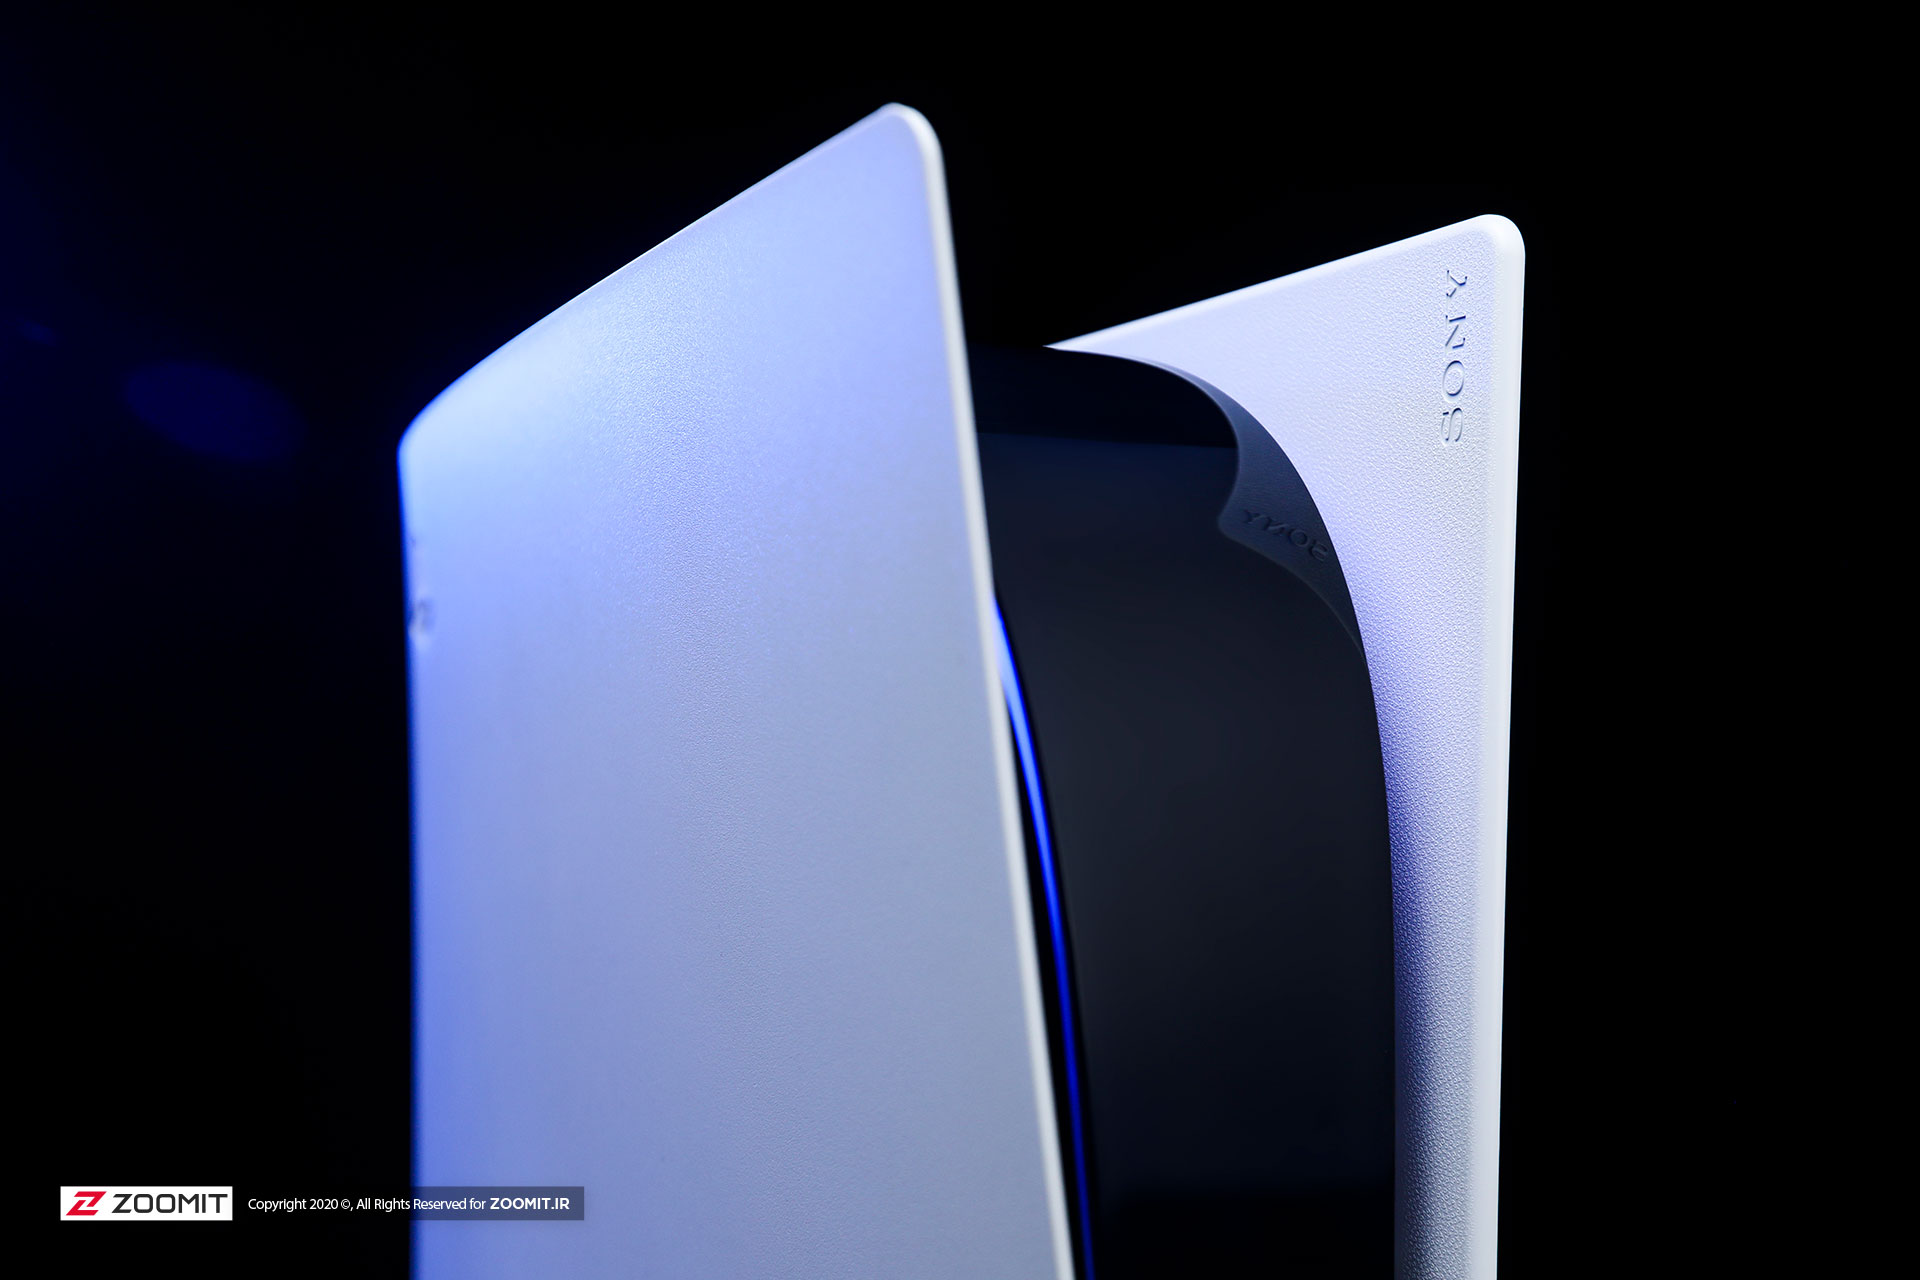 Body design of PlayStation 5 PS5